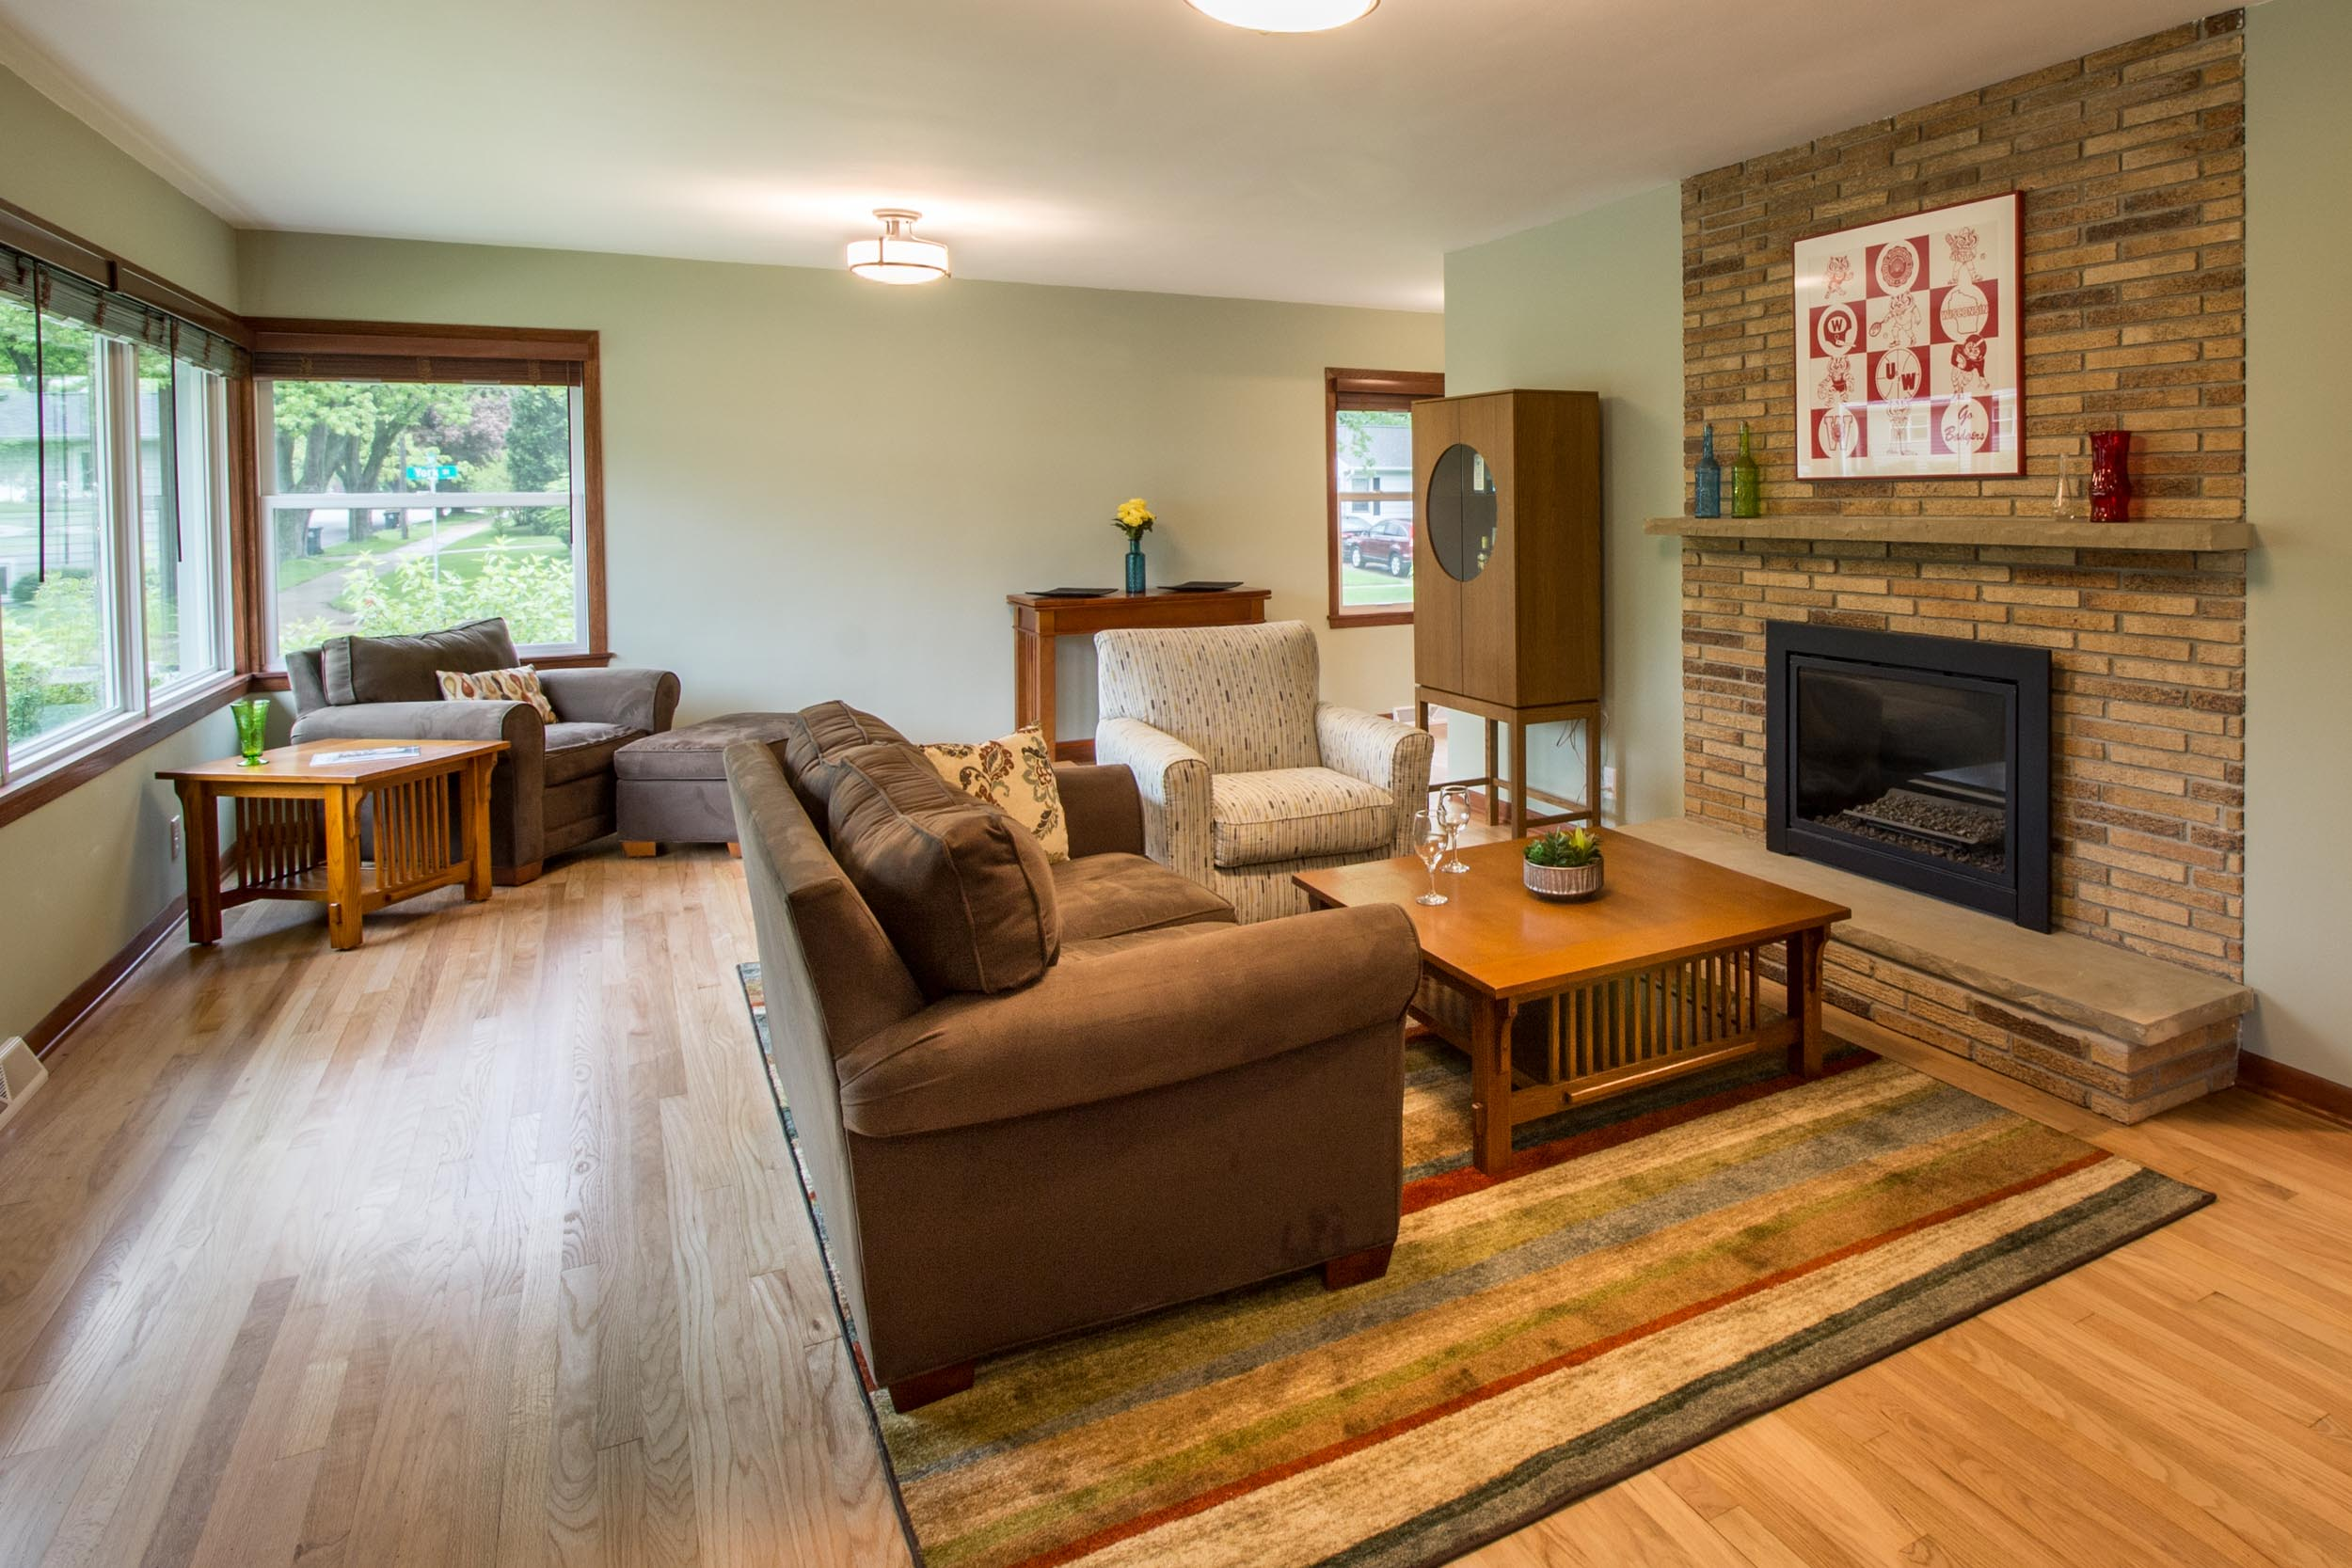 Living Room Renovation with Fireplace Midvale Heights Madison, WI